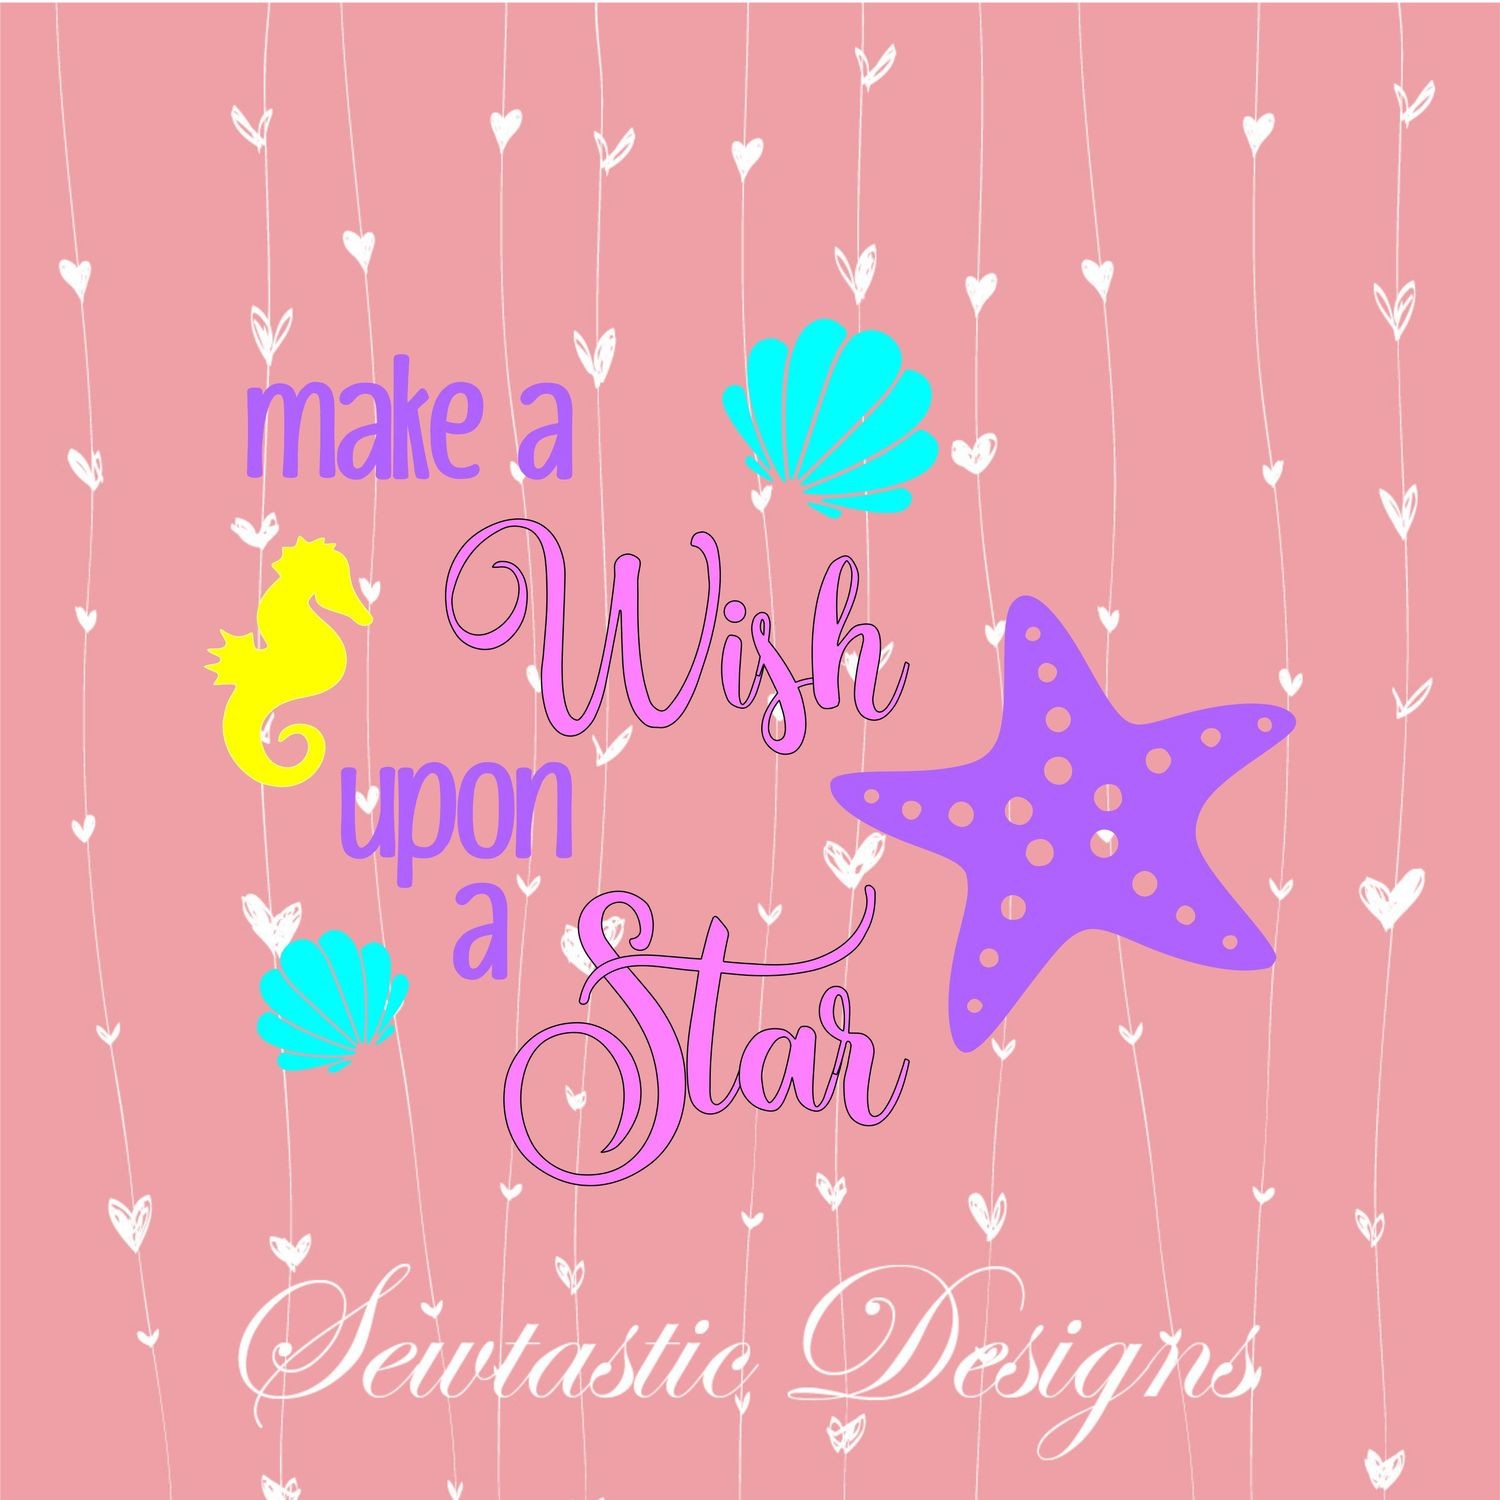 Make A Wish Upon A Star Svg Make A Wish Svg Star Svg Star Fish Svg Cut File Iron On Decal Cricut Silhouette Scanncut Many More